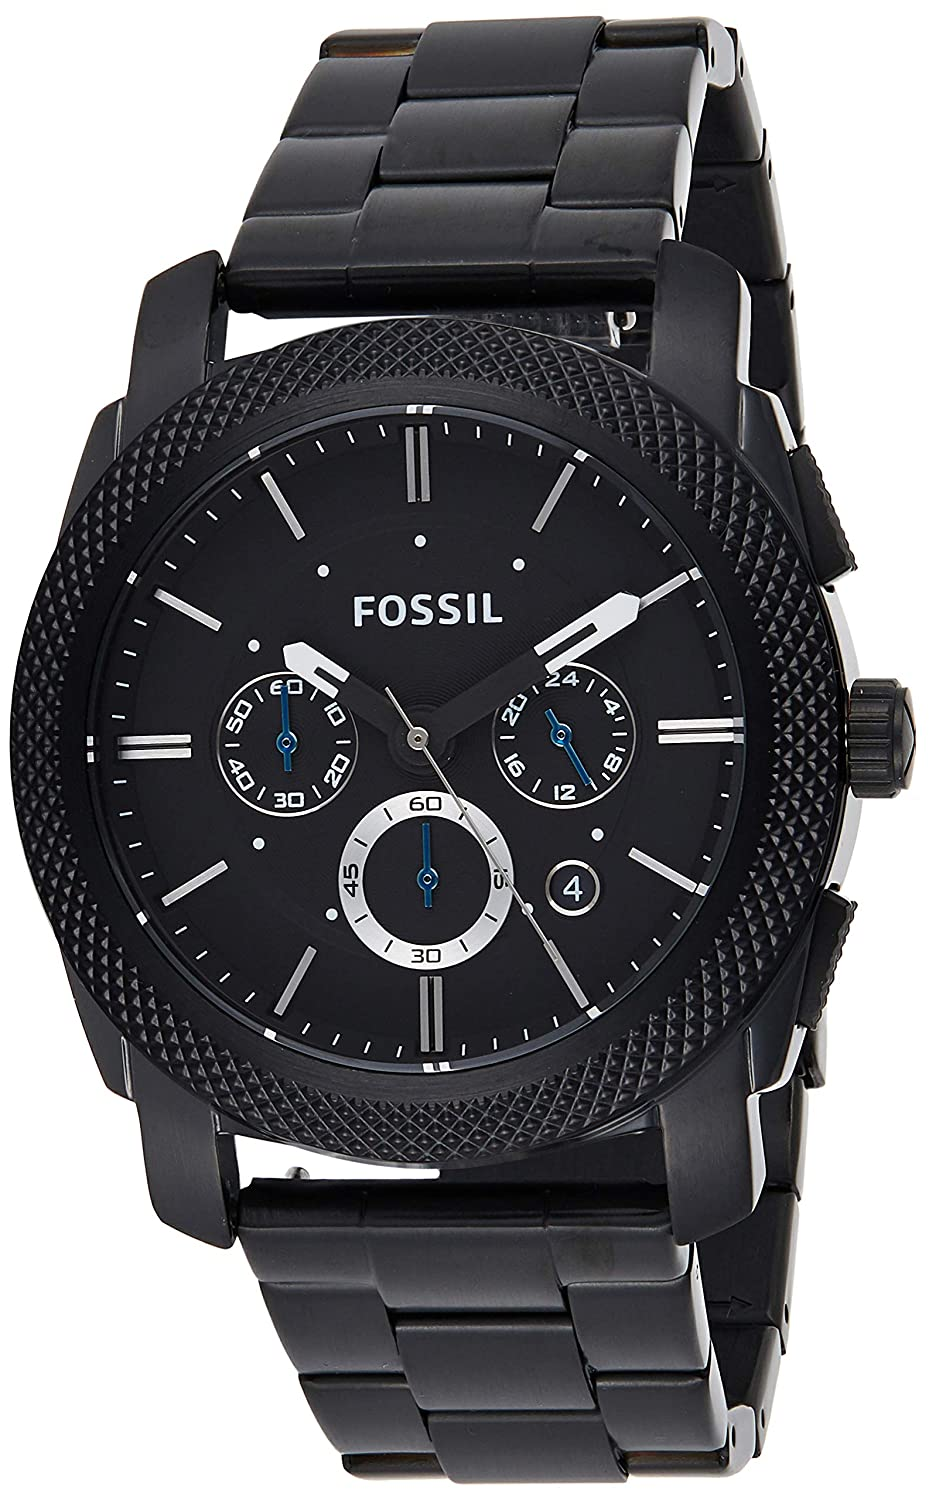 Buy Fossil Analog Black Dial Men's Watch - FS4552 at Amazon.in